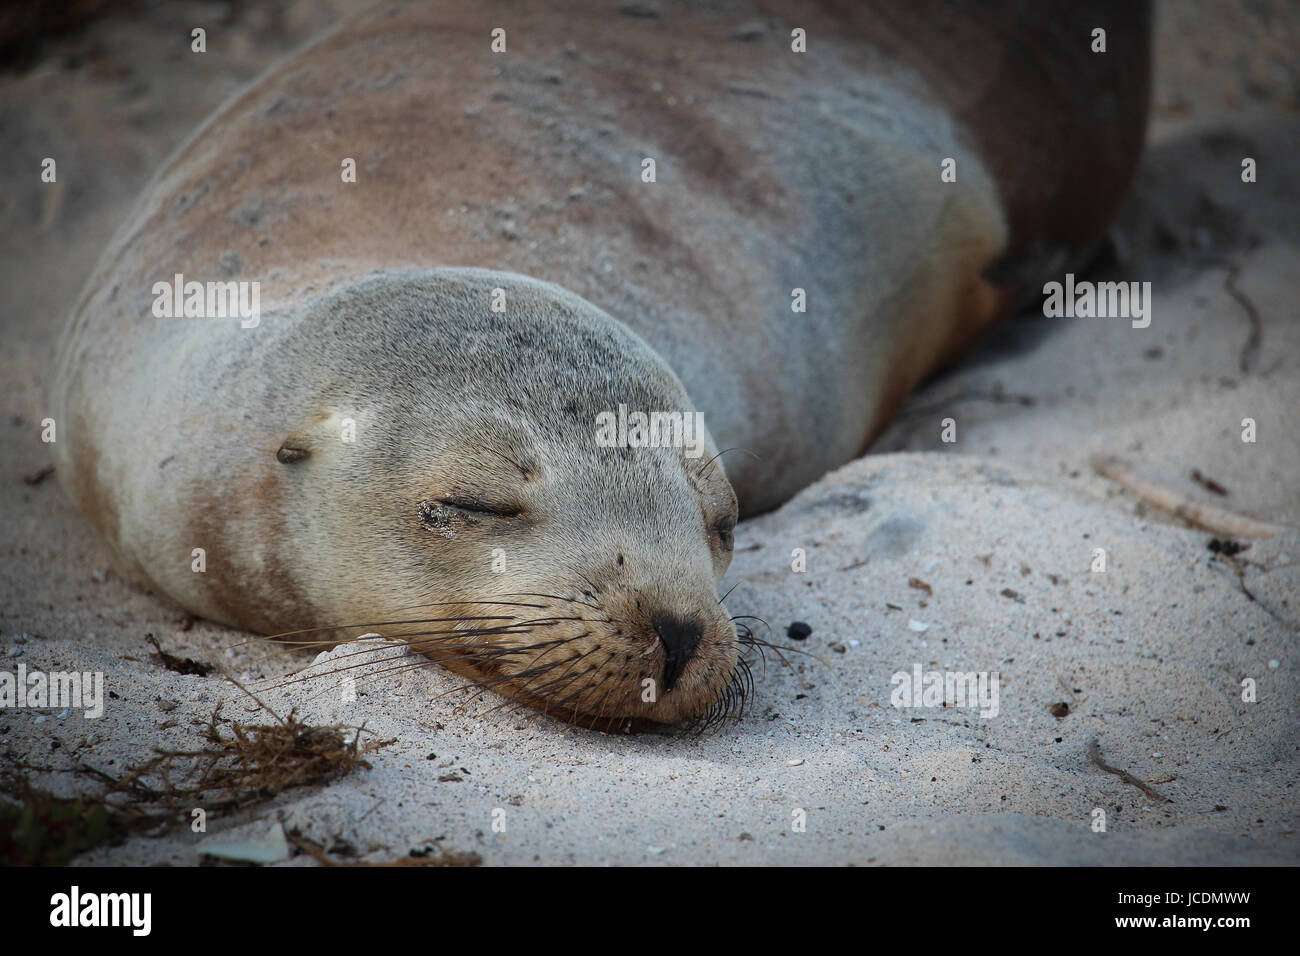 Snoozing on the beach, a Galapagos sea lion (Zalophus wollebacki) takes a siesta. Sea lions lounge in groups on - Stock Image